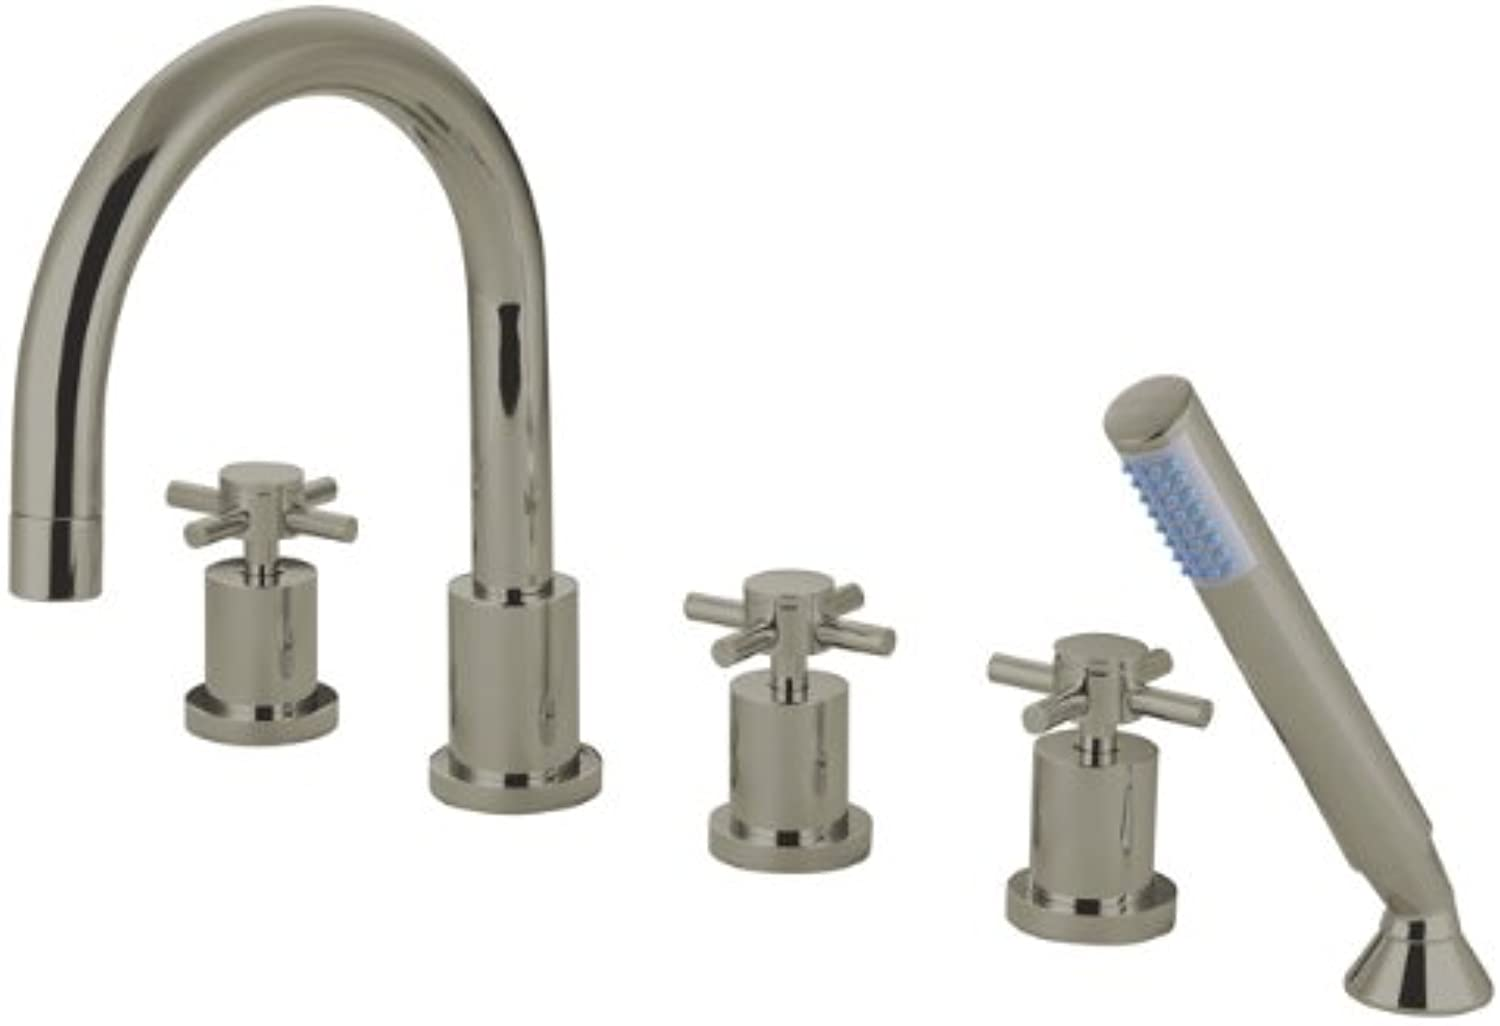 Kingston Brass KS83285DX Concord Roman Tub Filler 5 Pieces, Brushed Nickel